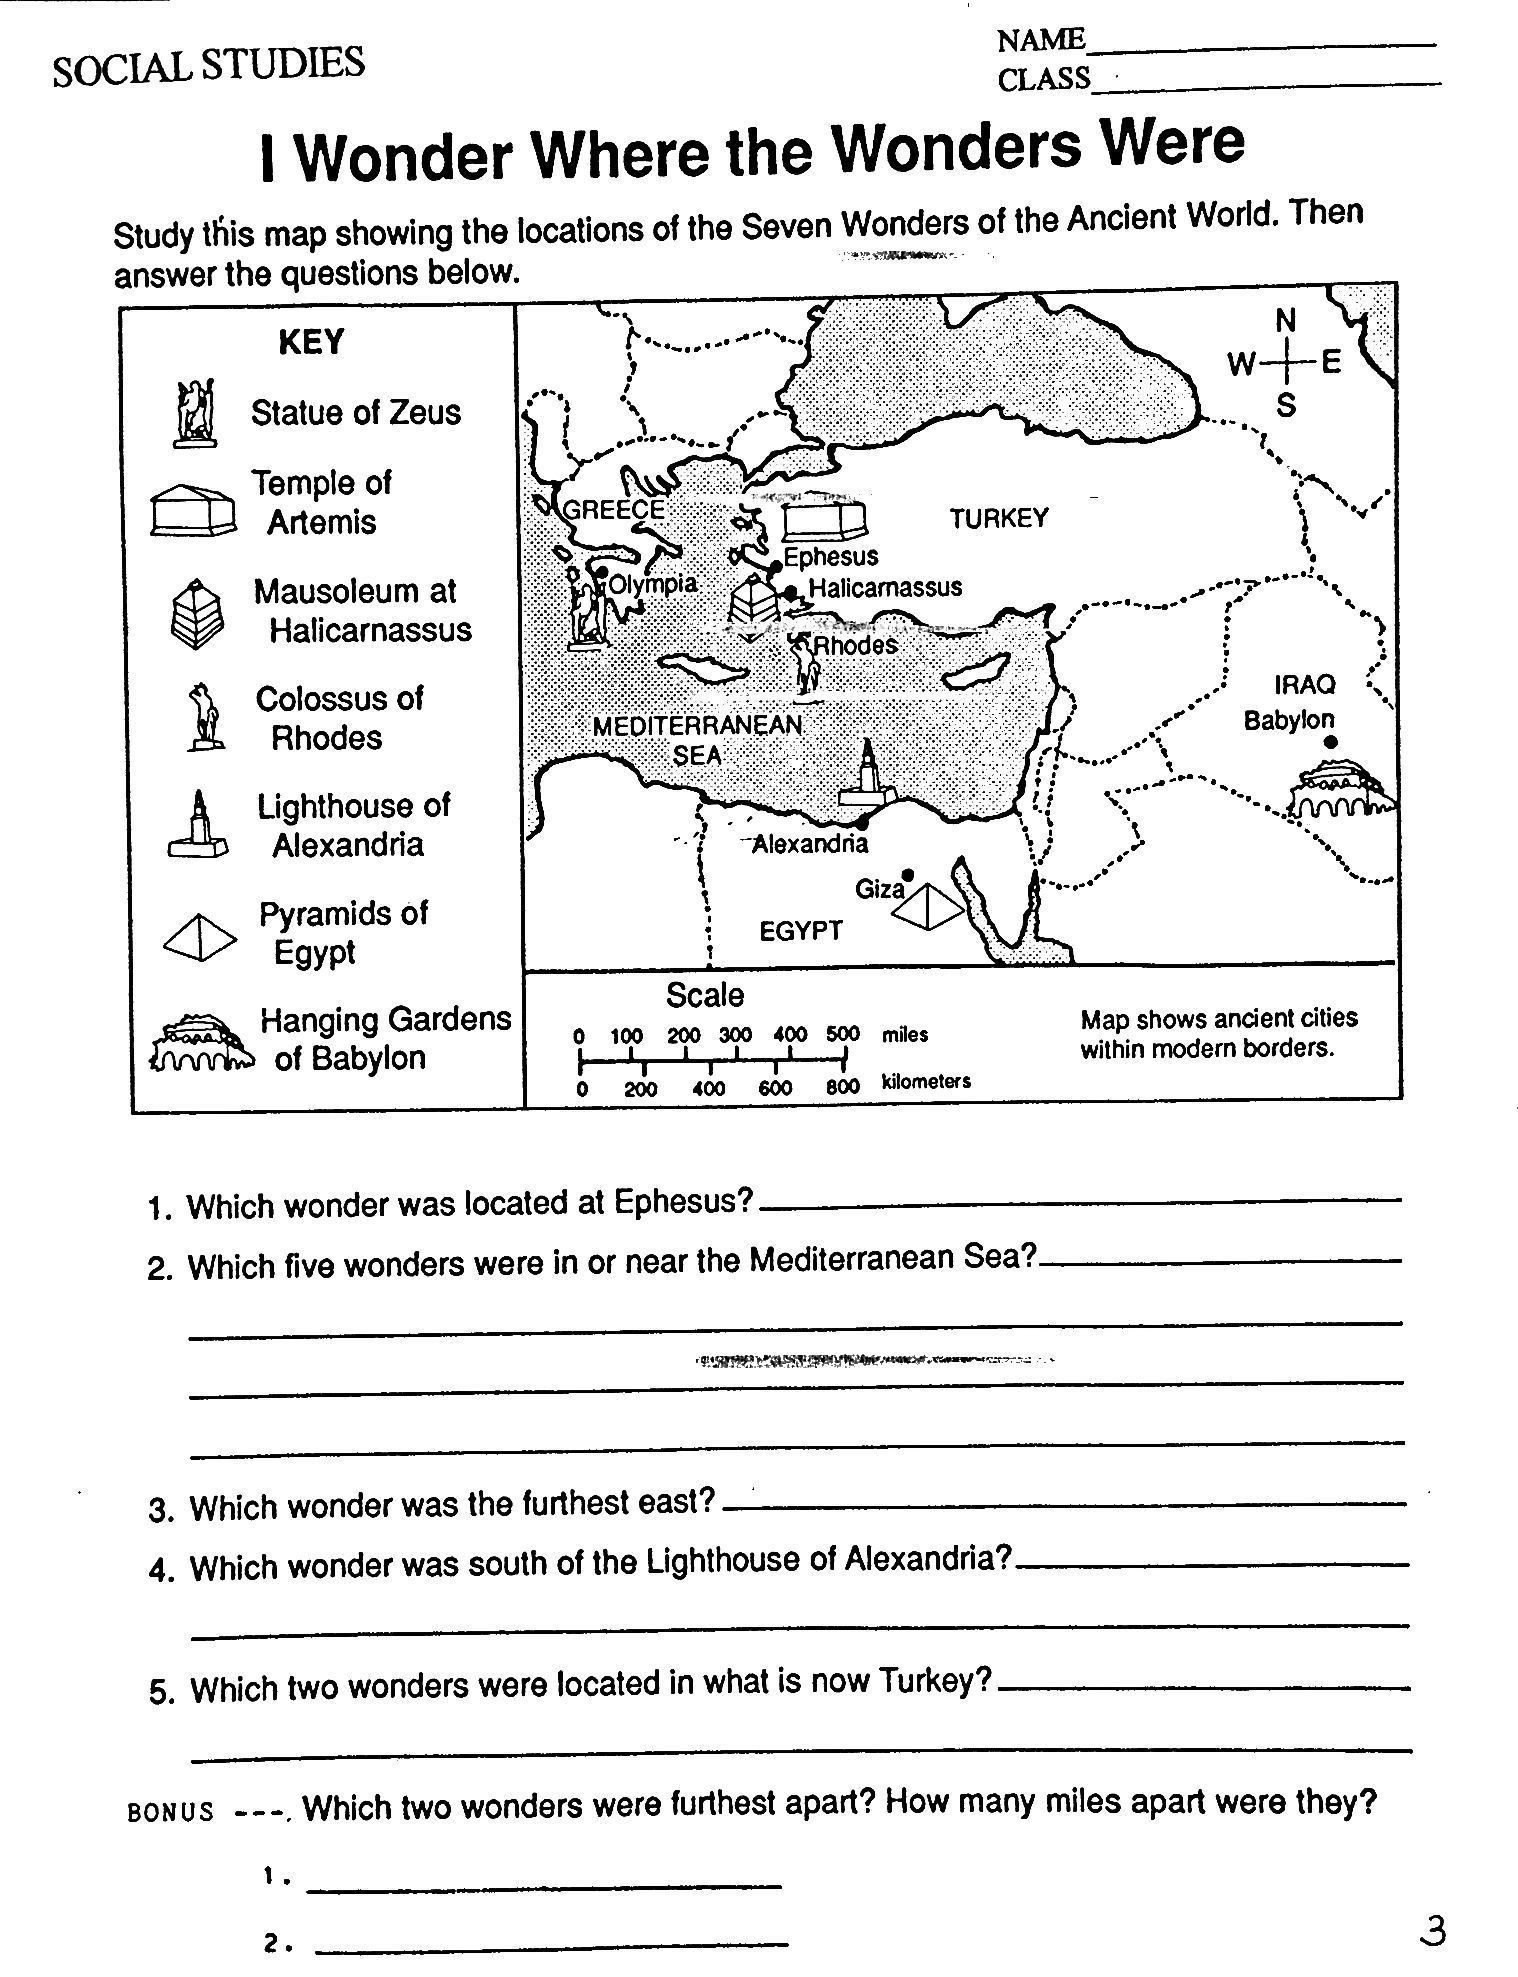 Mesopotamia Worksheets 6th Grade Ch3 I Wonder where 1 518—1 977 Pixels